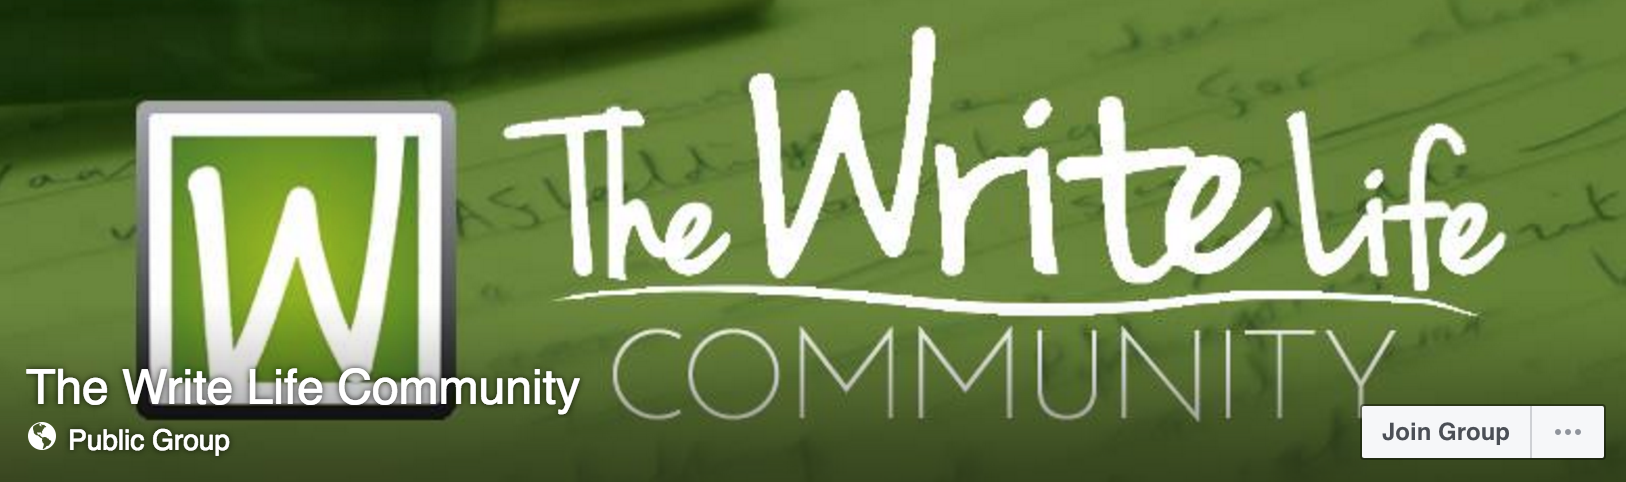 The Write Life Community Facebook Group